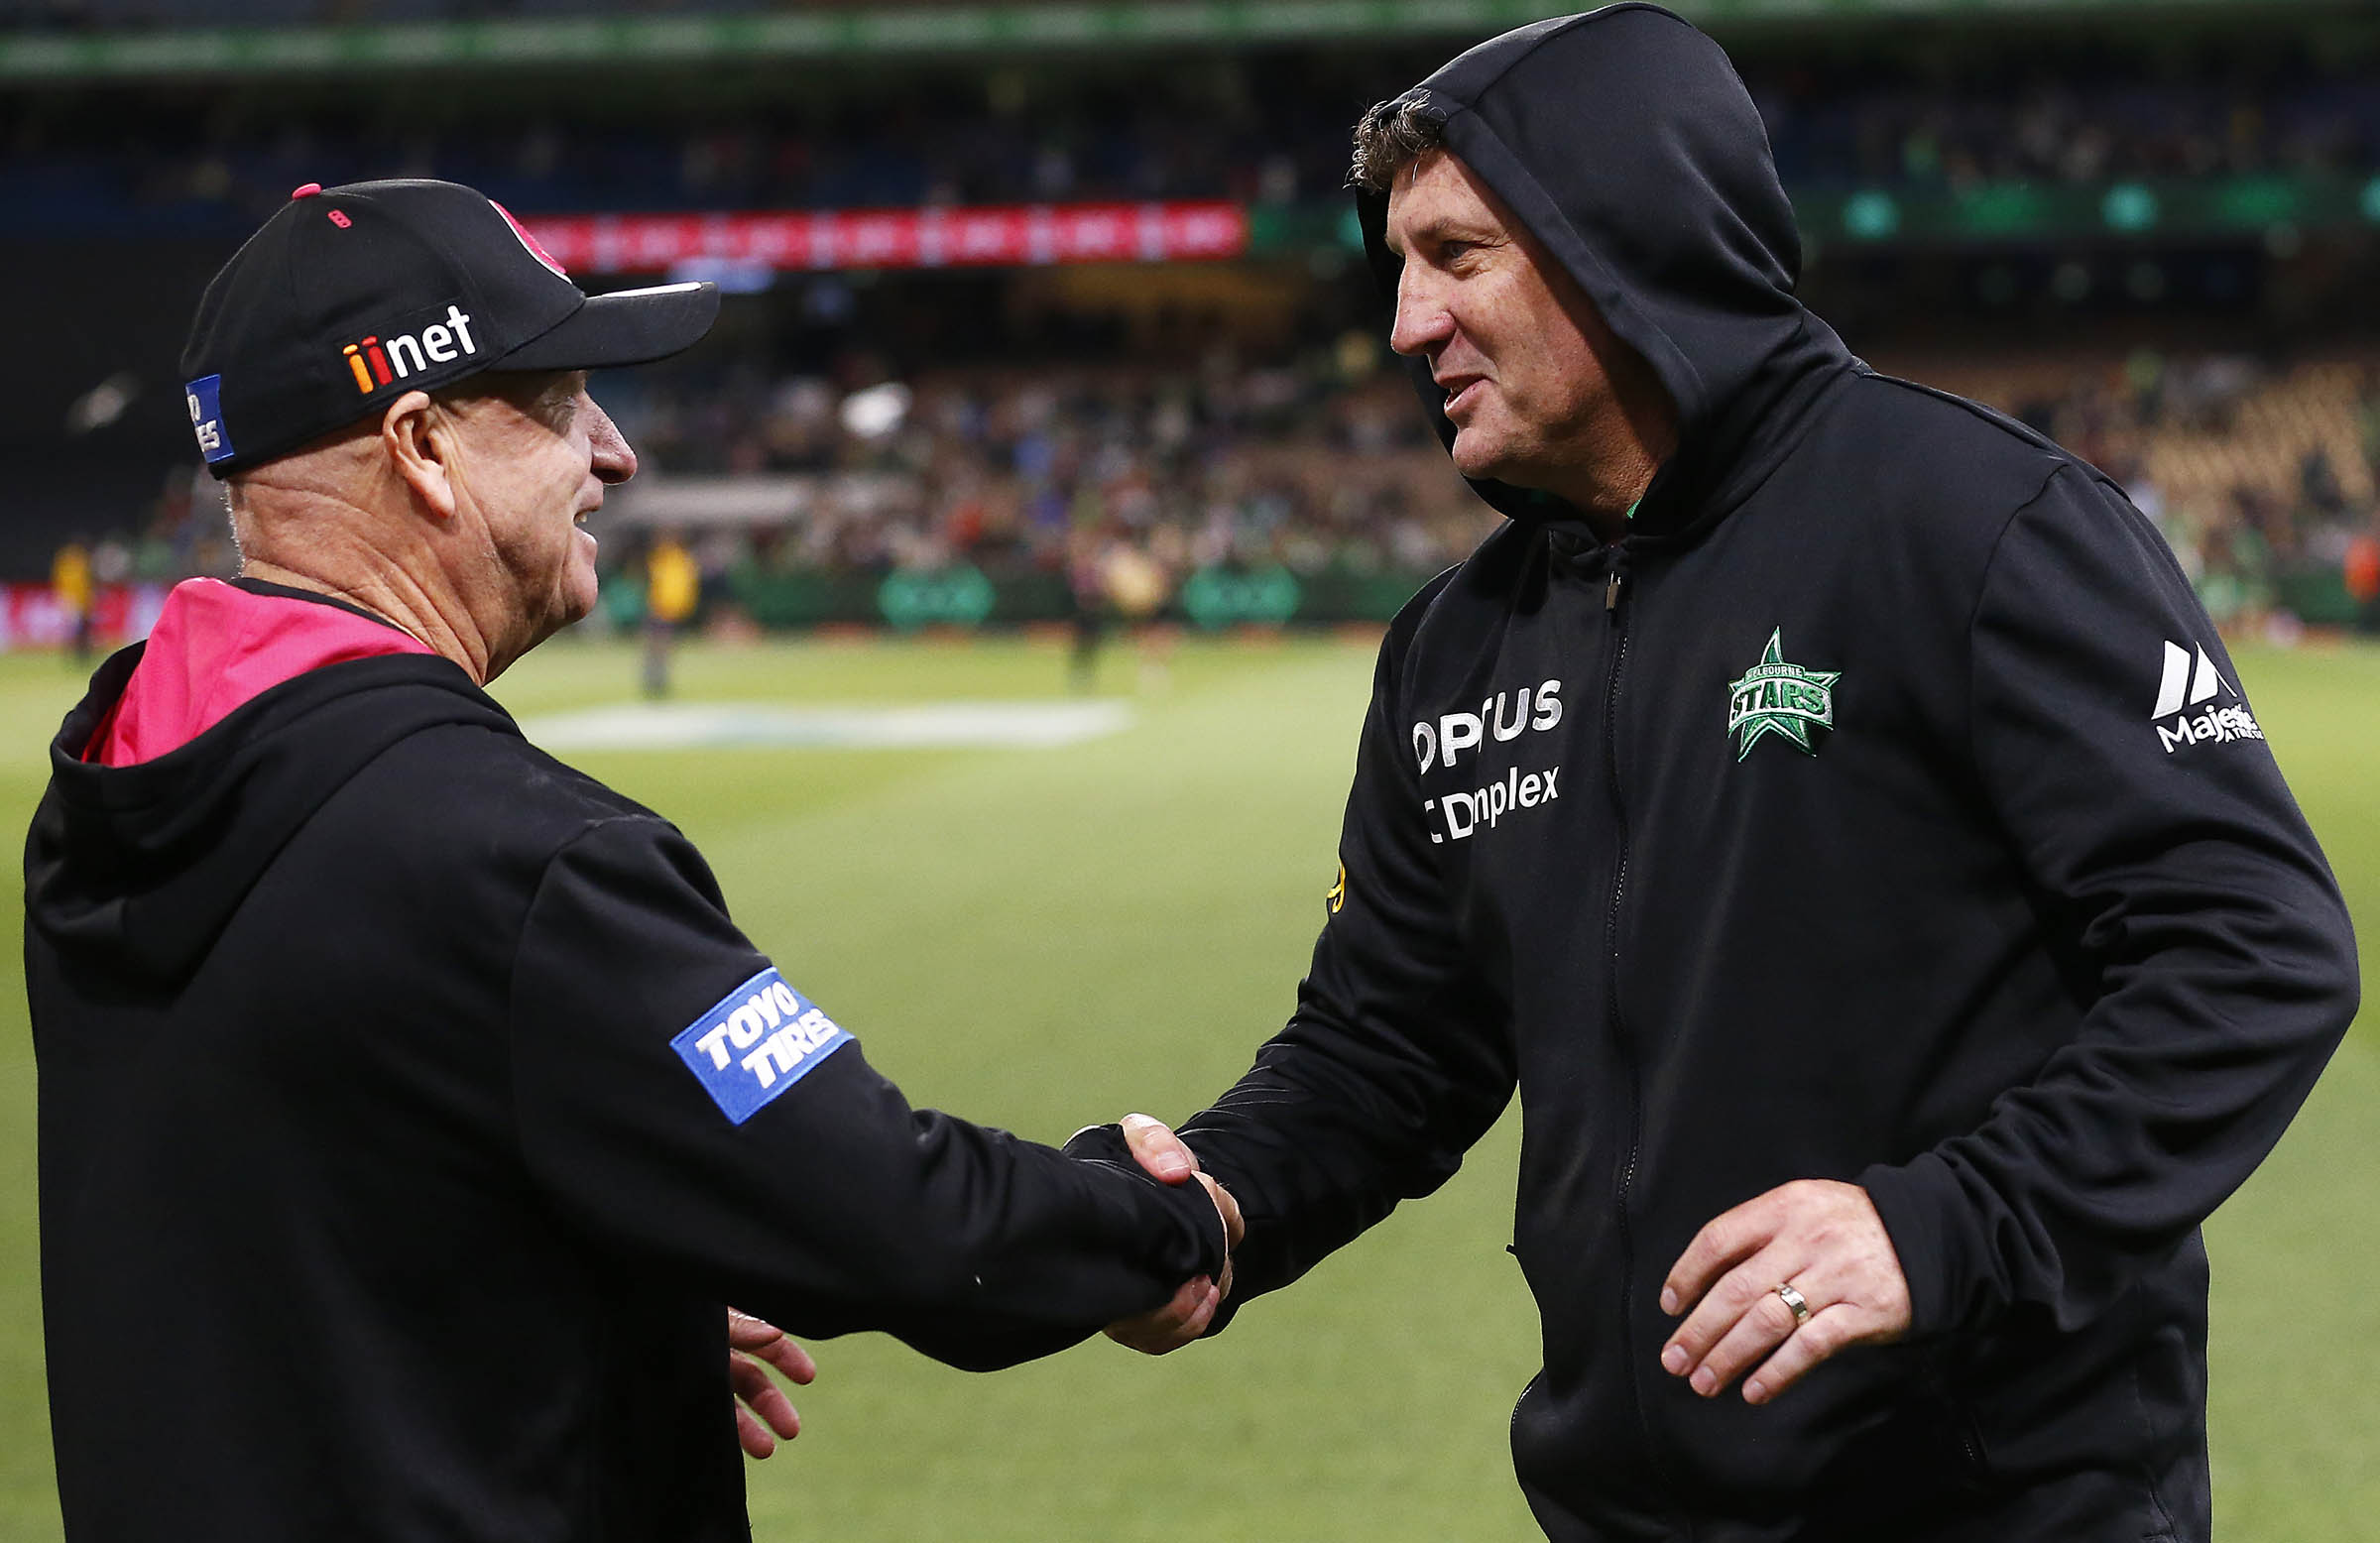 With former charge and now coaching rival David Hussey // Getty